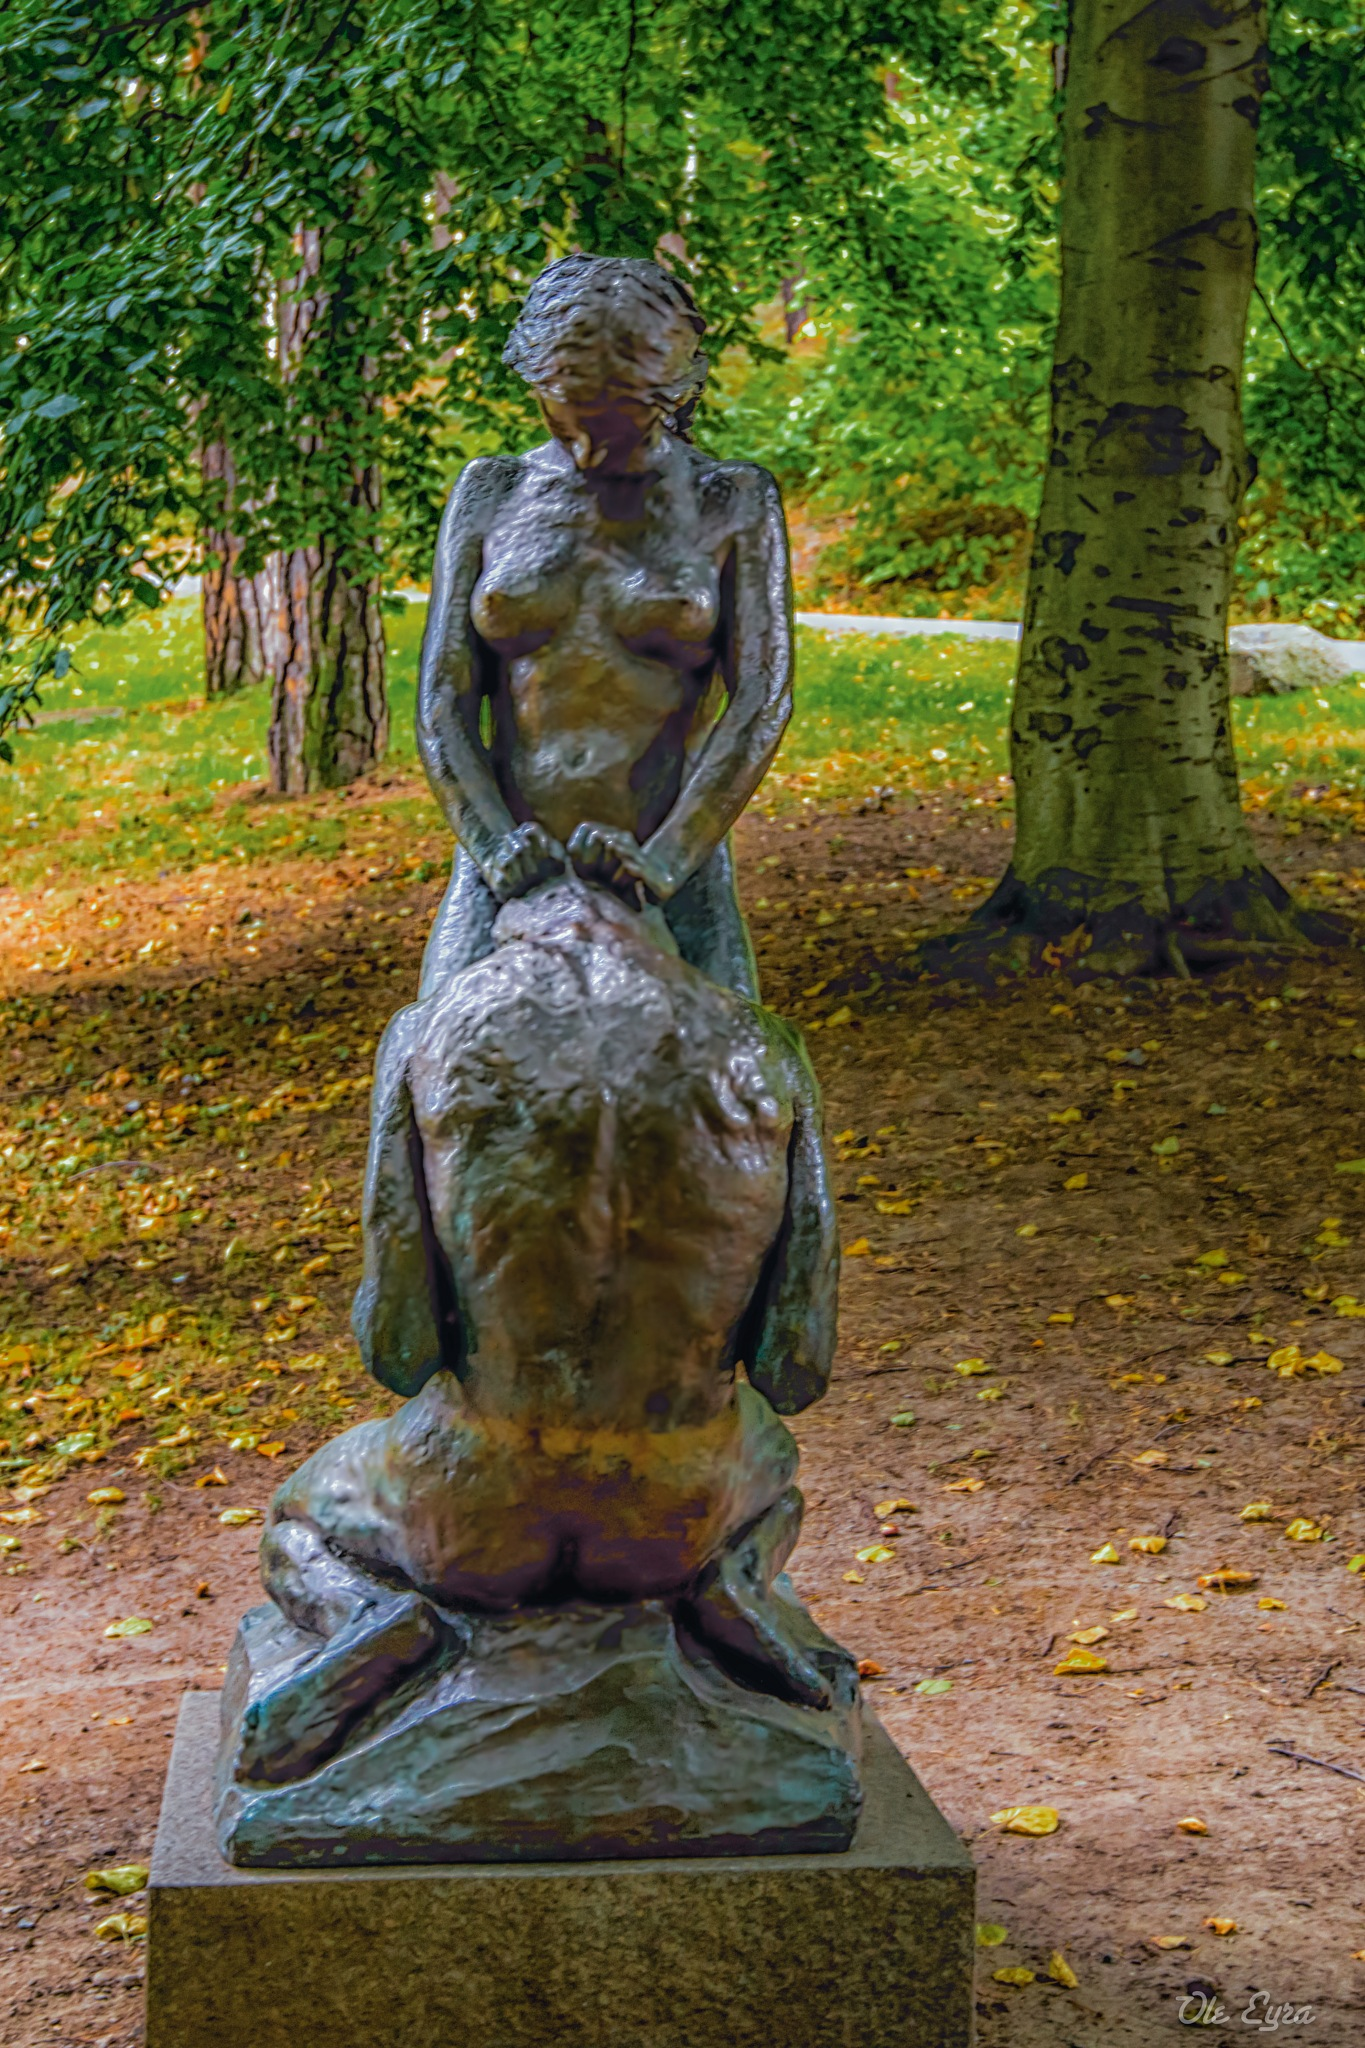 Man and Woman by Ole Morten Eyra